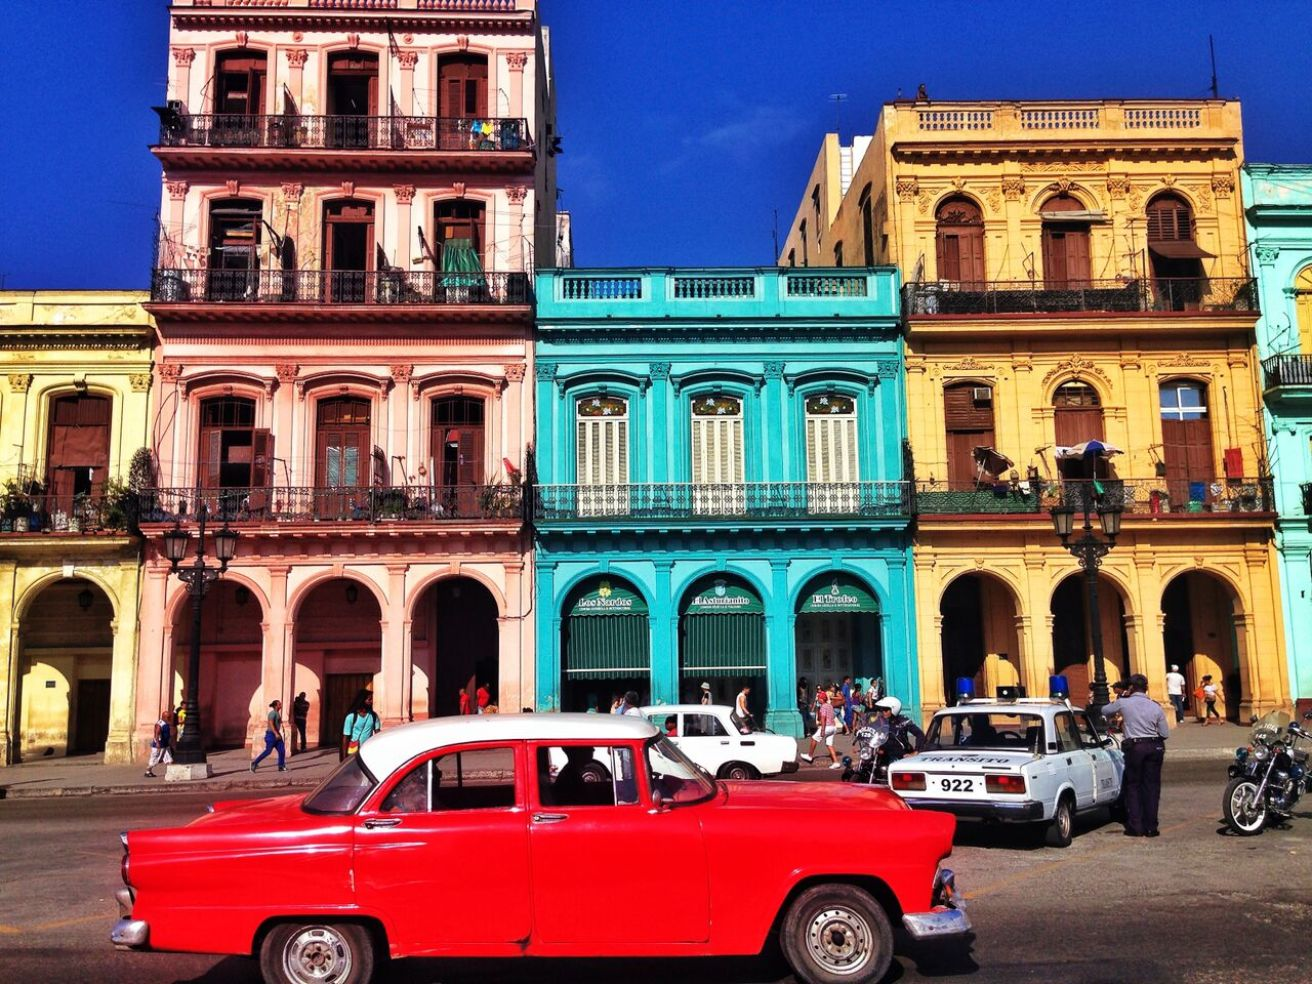 Colorful buildings in Old Havana, Cuba